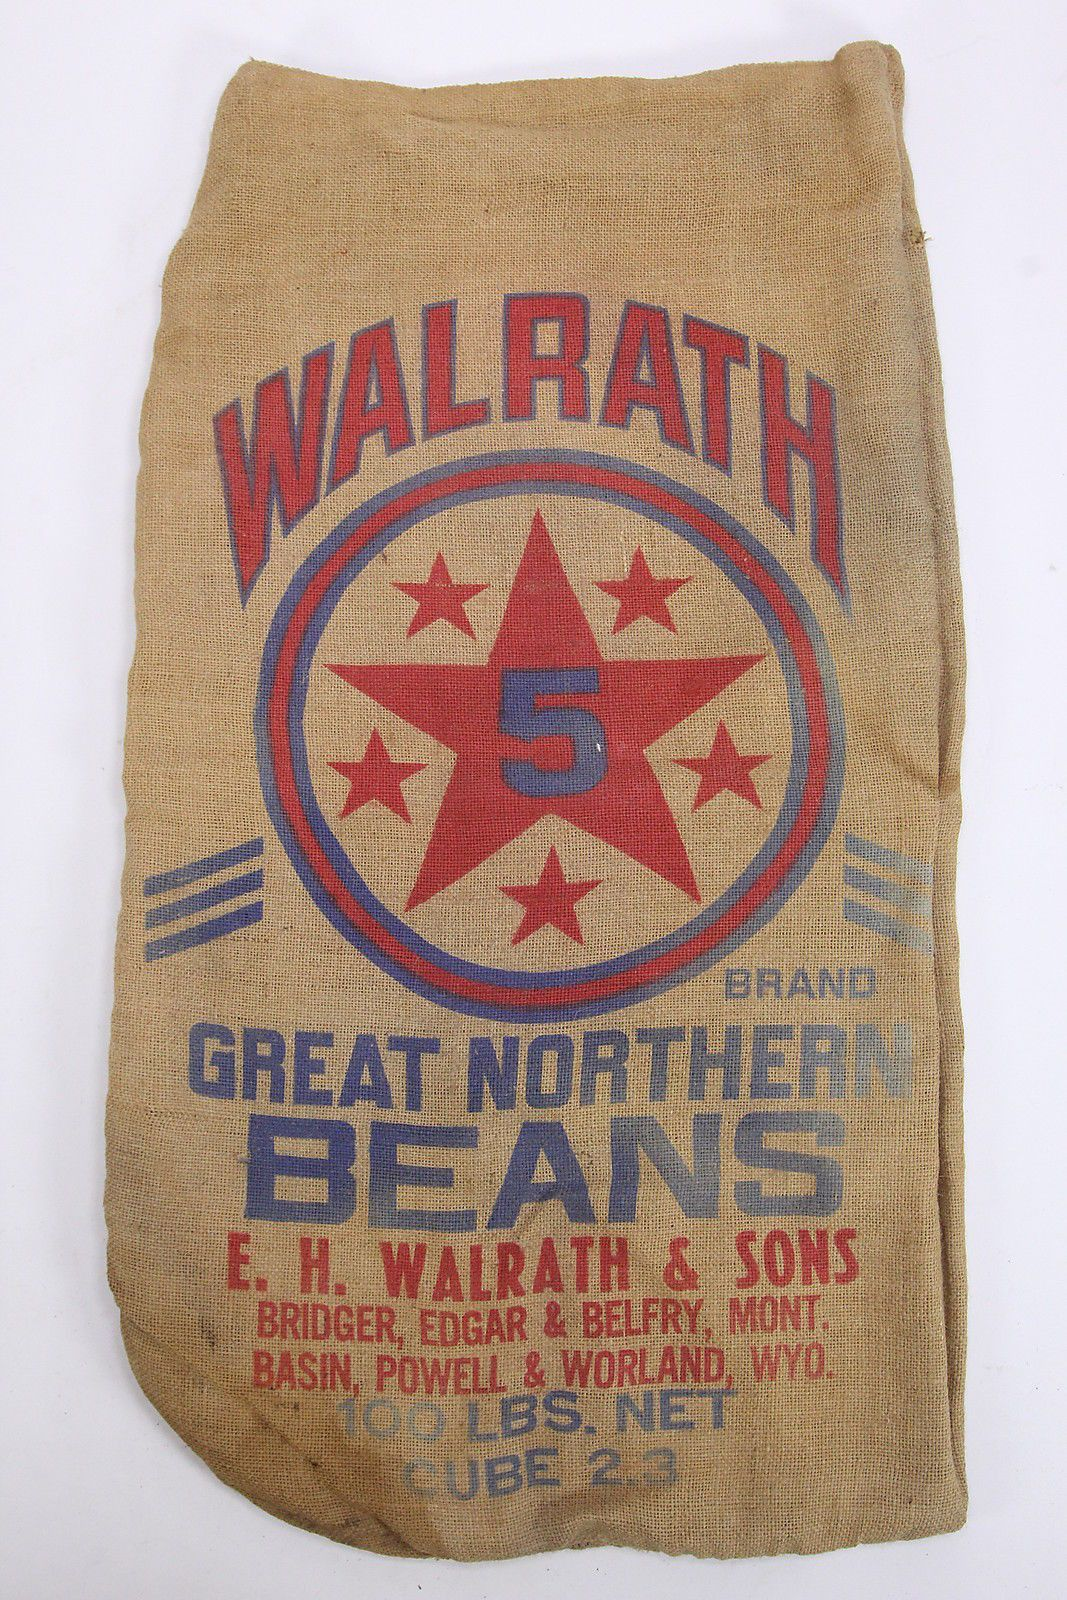 Walrath 5 Star Great Northern Beans Burlap Gunny Sack Advertiser